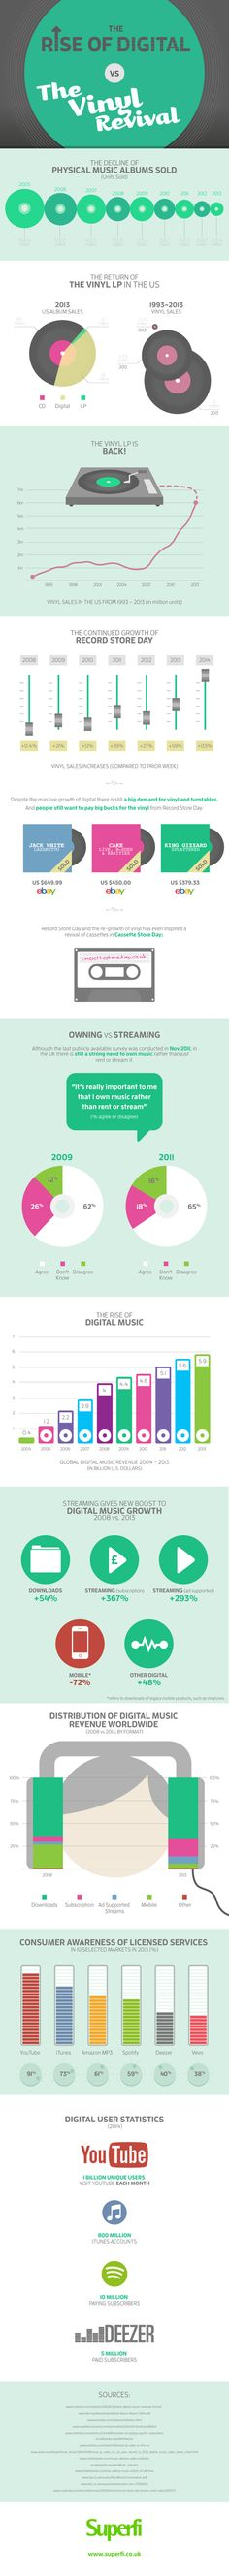 The Rise of Digital #infographic -Ok, no board of mine is complete without an infographic.  It highlights with statistics how old music media is coming back.